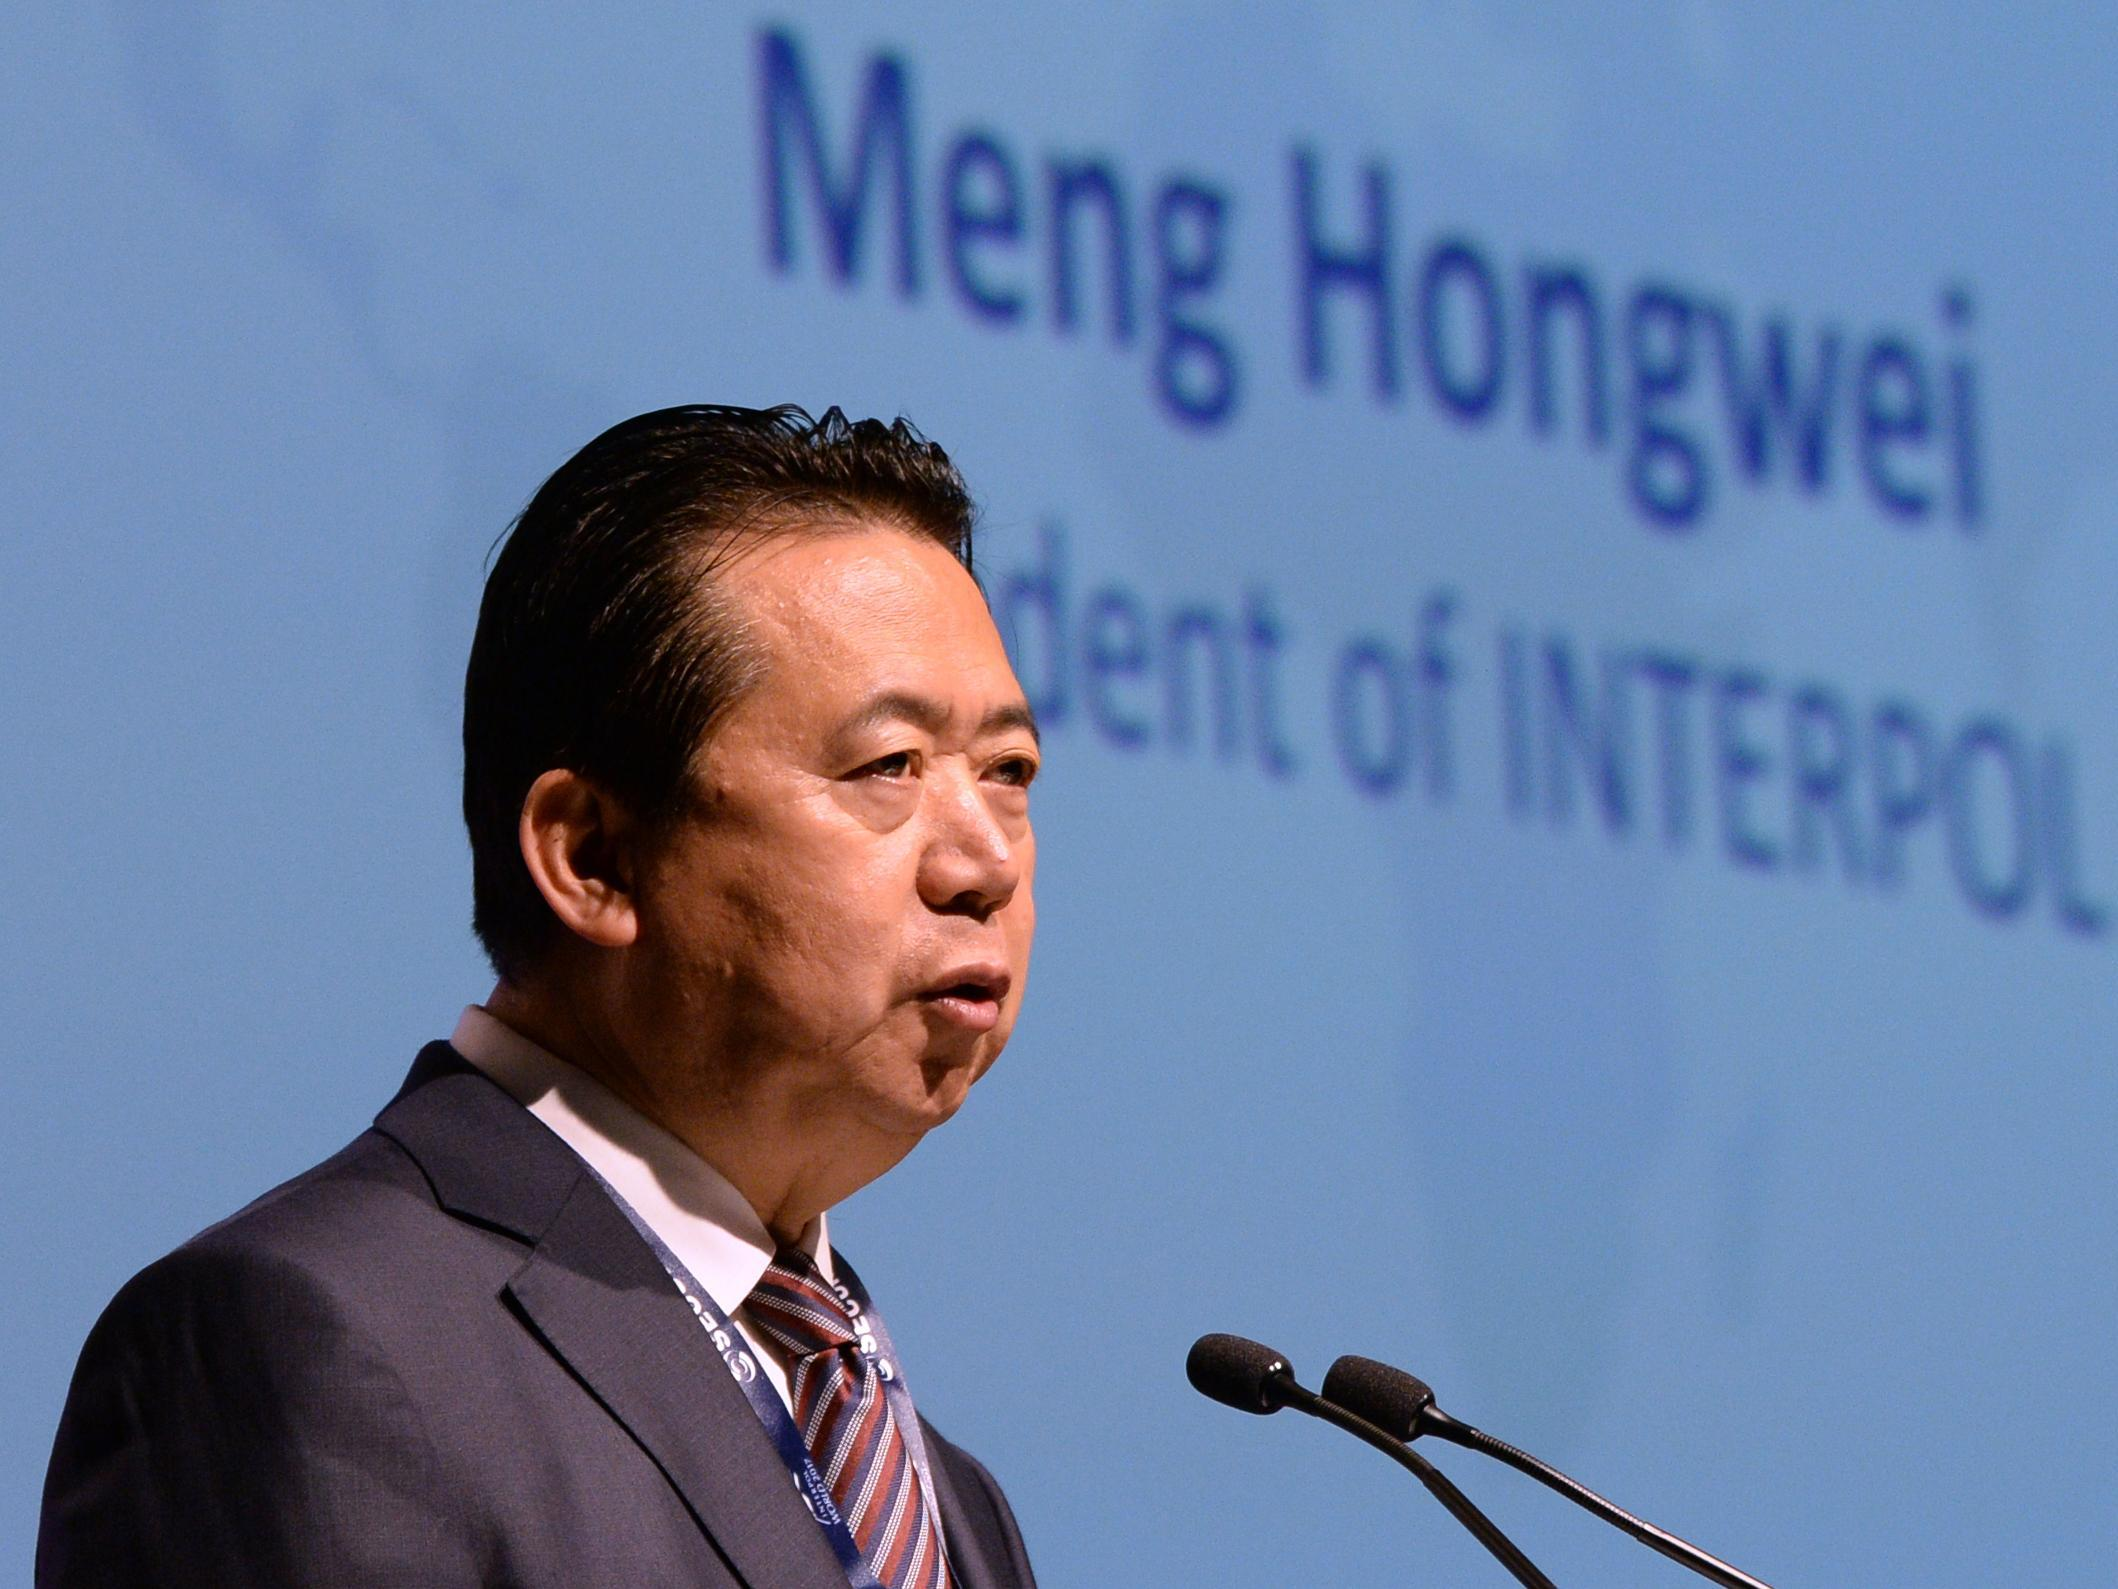 Interpol - latest news, breaking stories and comment - The